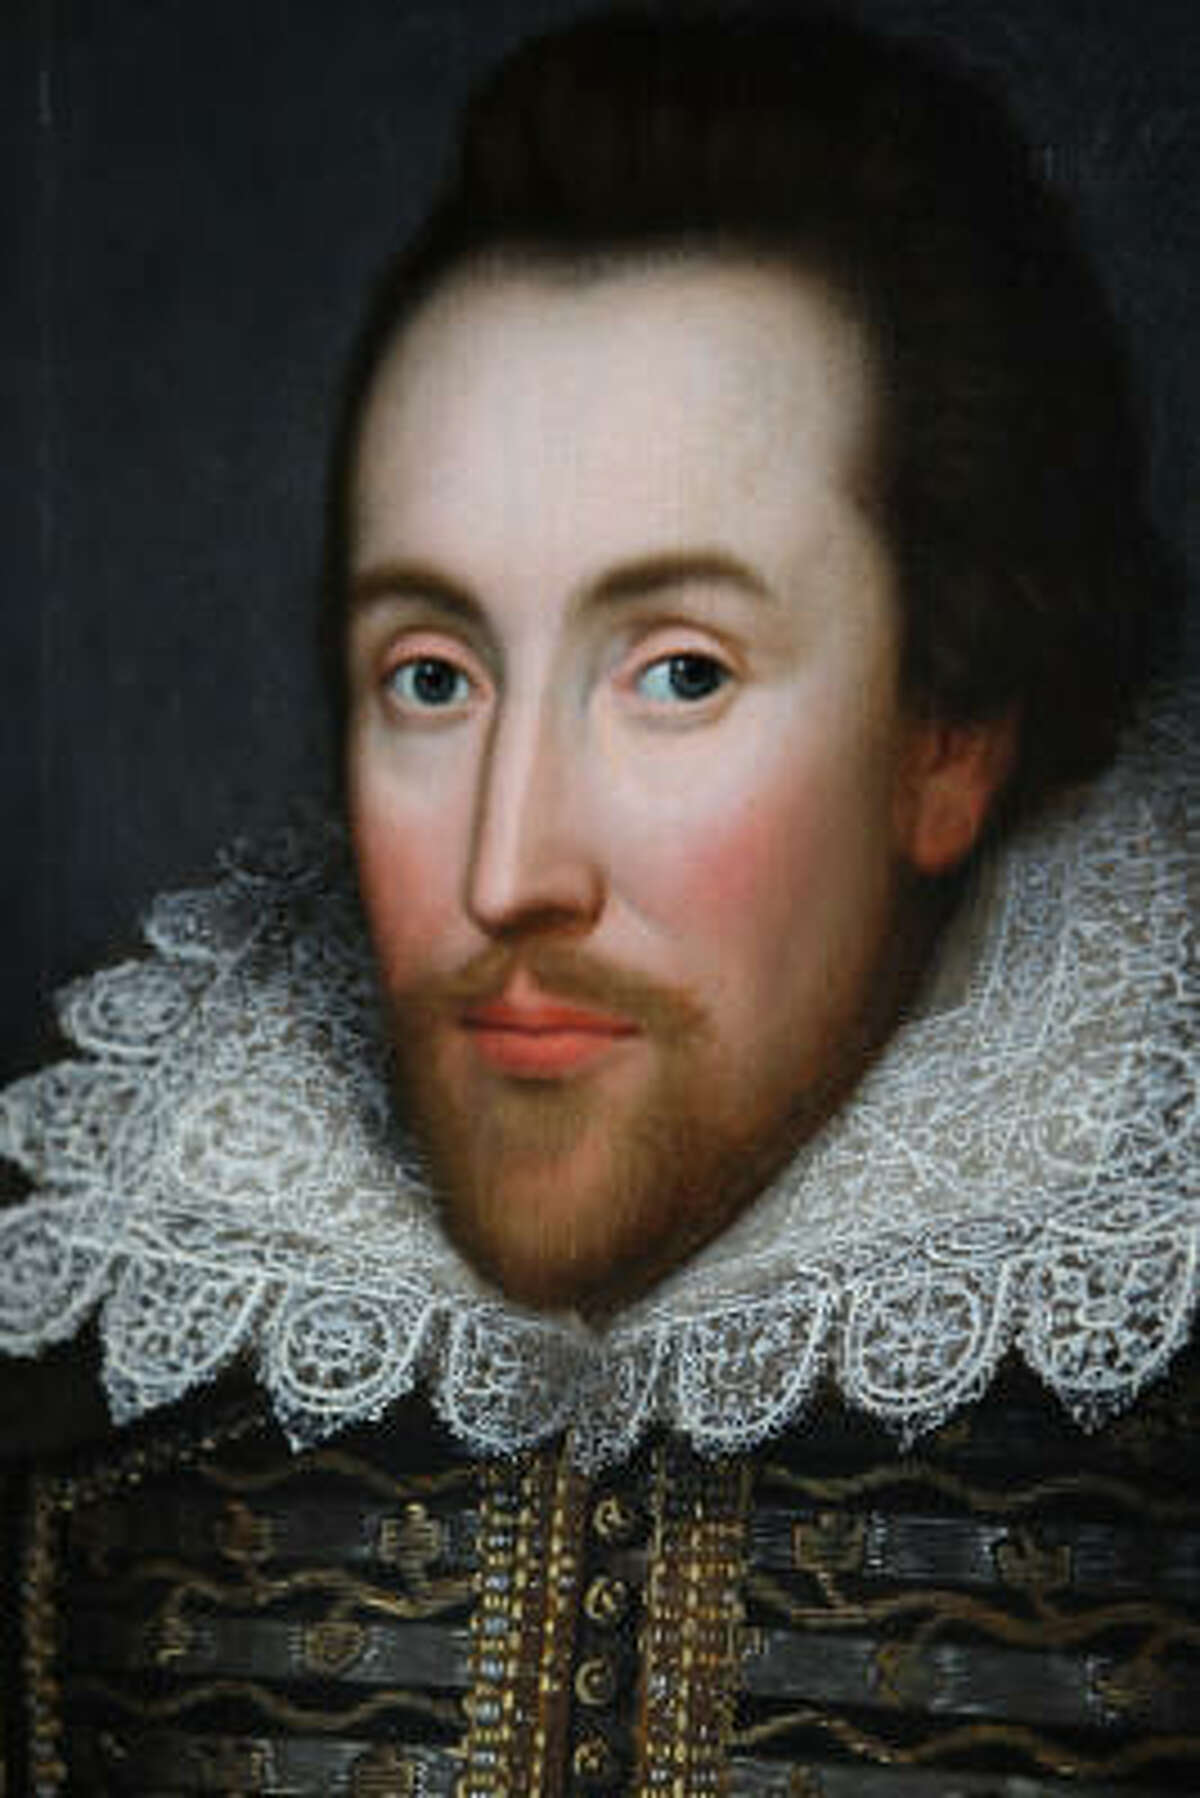 Shakespeare: This is Shakespeare at his best, in the Cobbe portrait. Some say this is the bard's most authentic likeness.